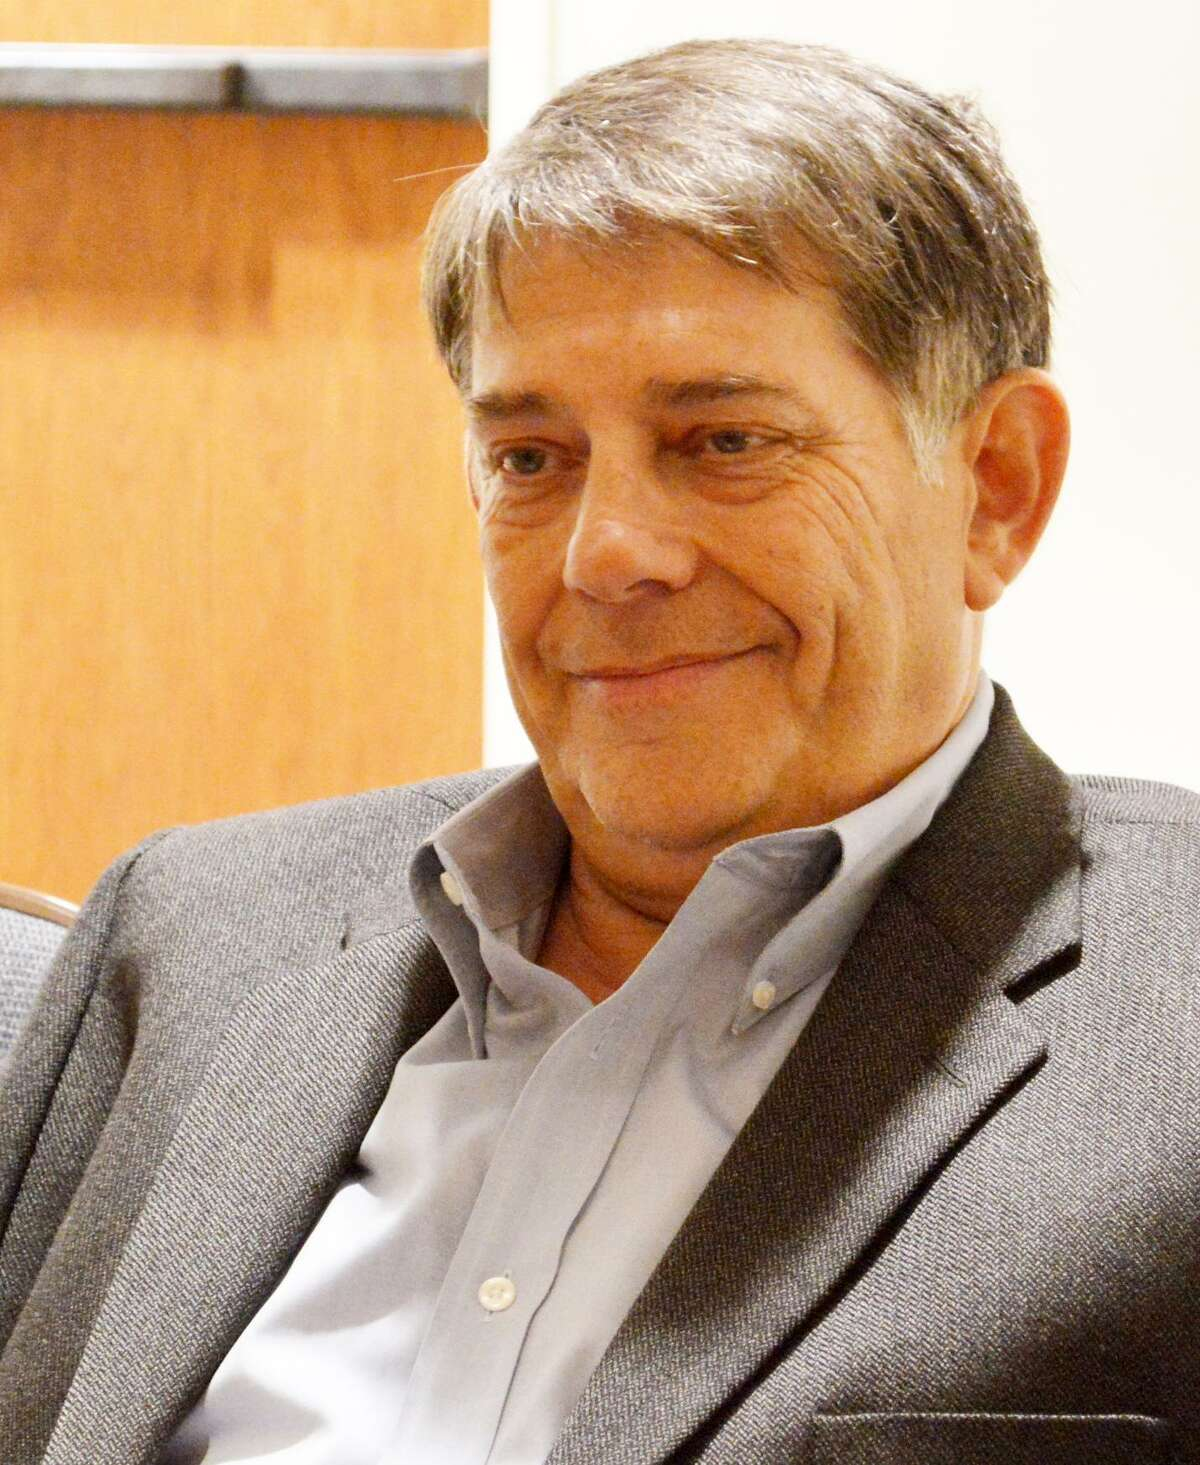 Paul Lebowitz, a Democrat, was elected Chair of the Planning and Zoning Commission (P&Z) at the Dec. 7 meetin of the P&Z.